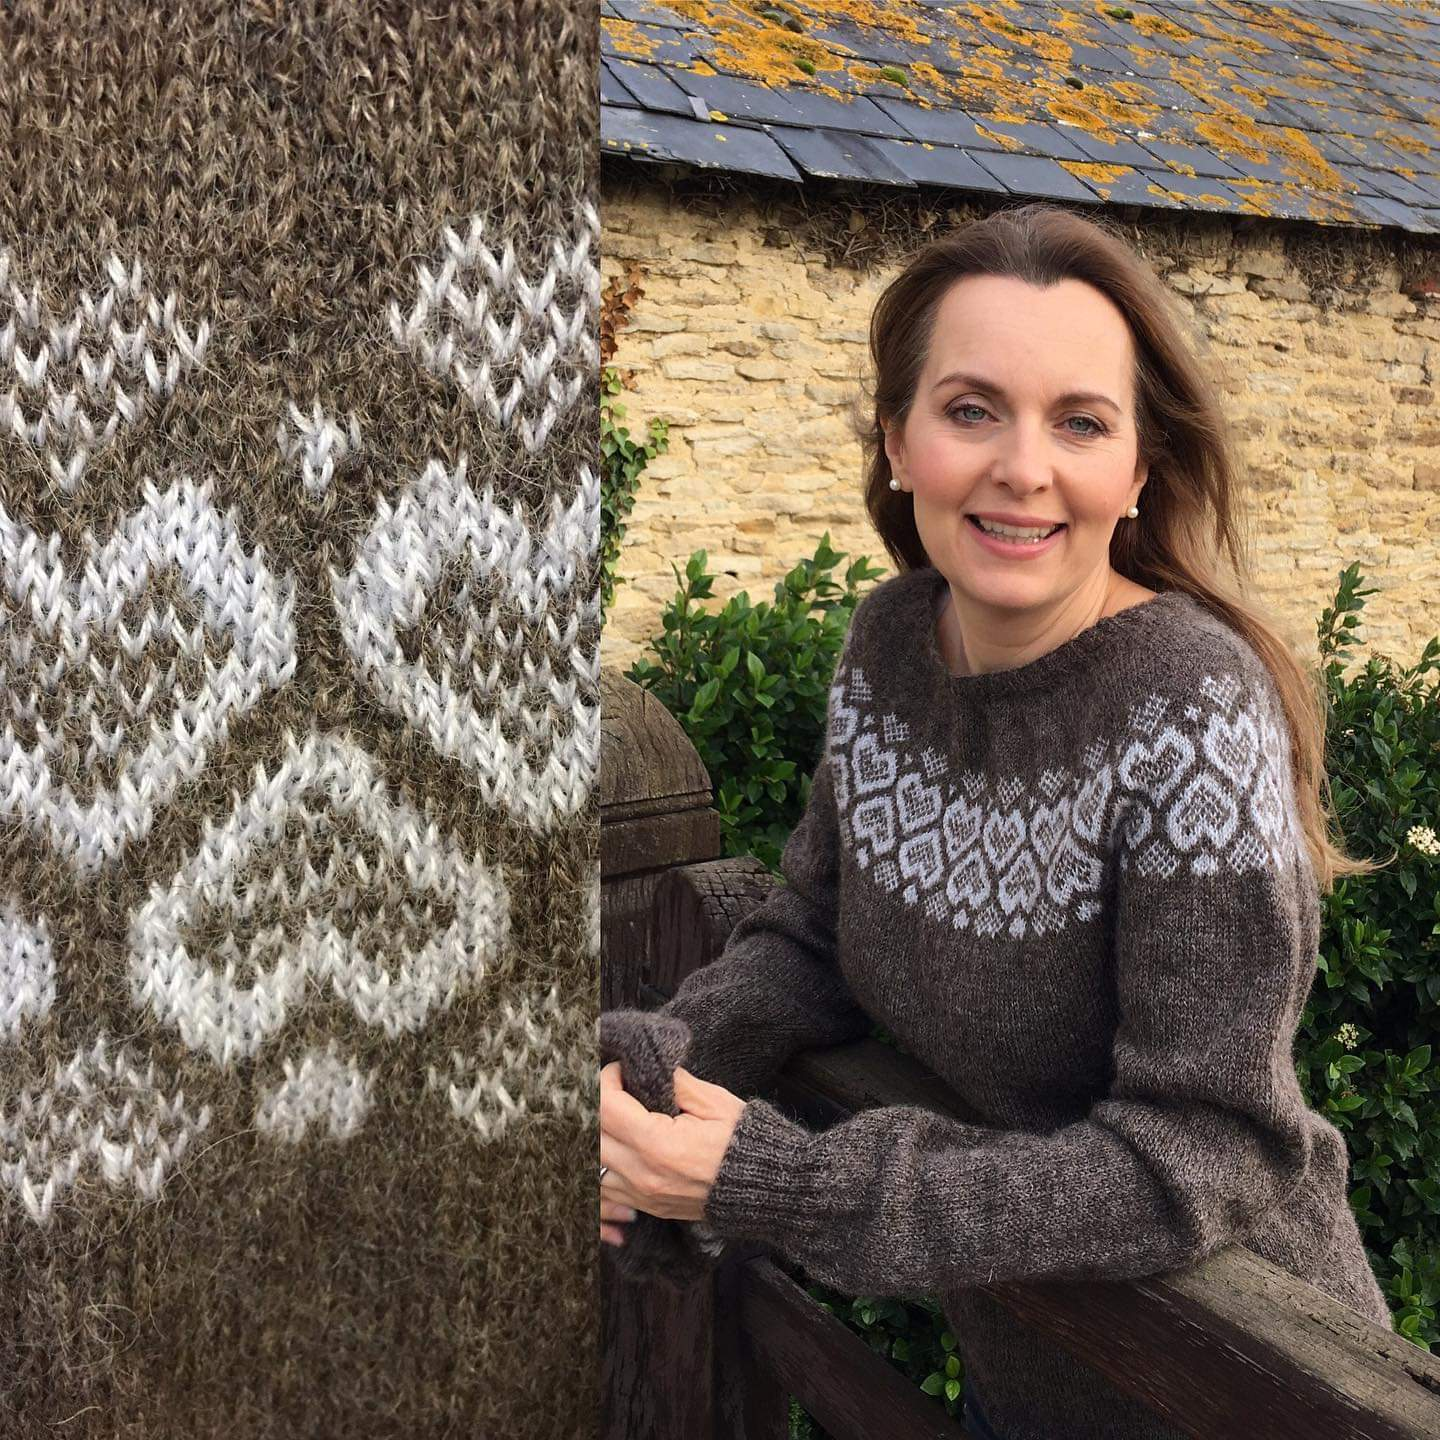 Wensleydale 'After the Rain' jumper modelled by Debra Stephenson